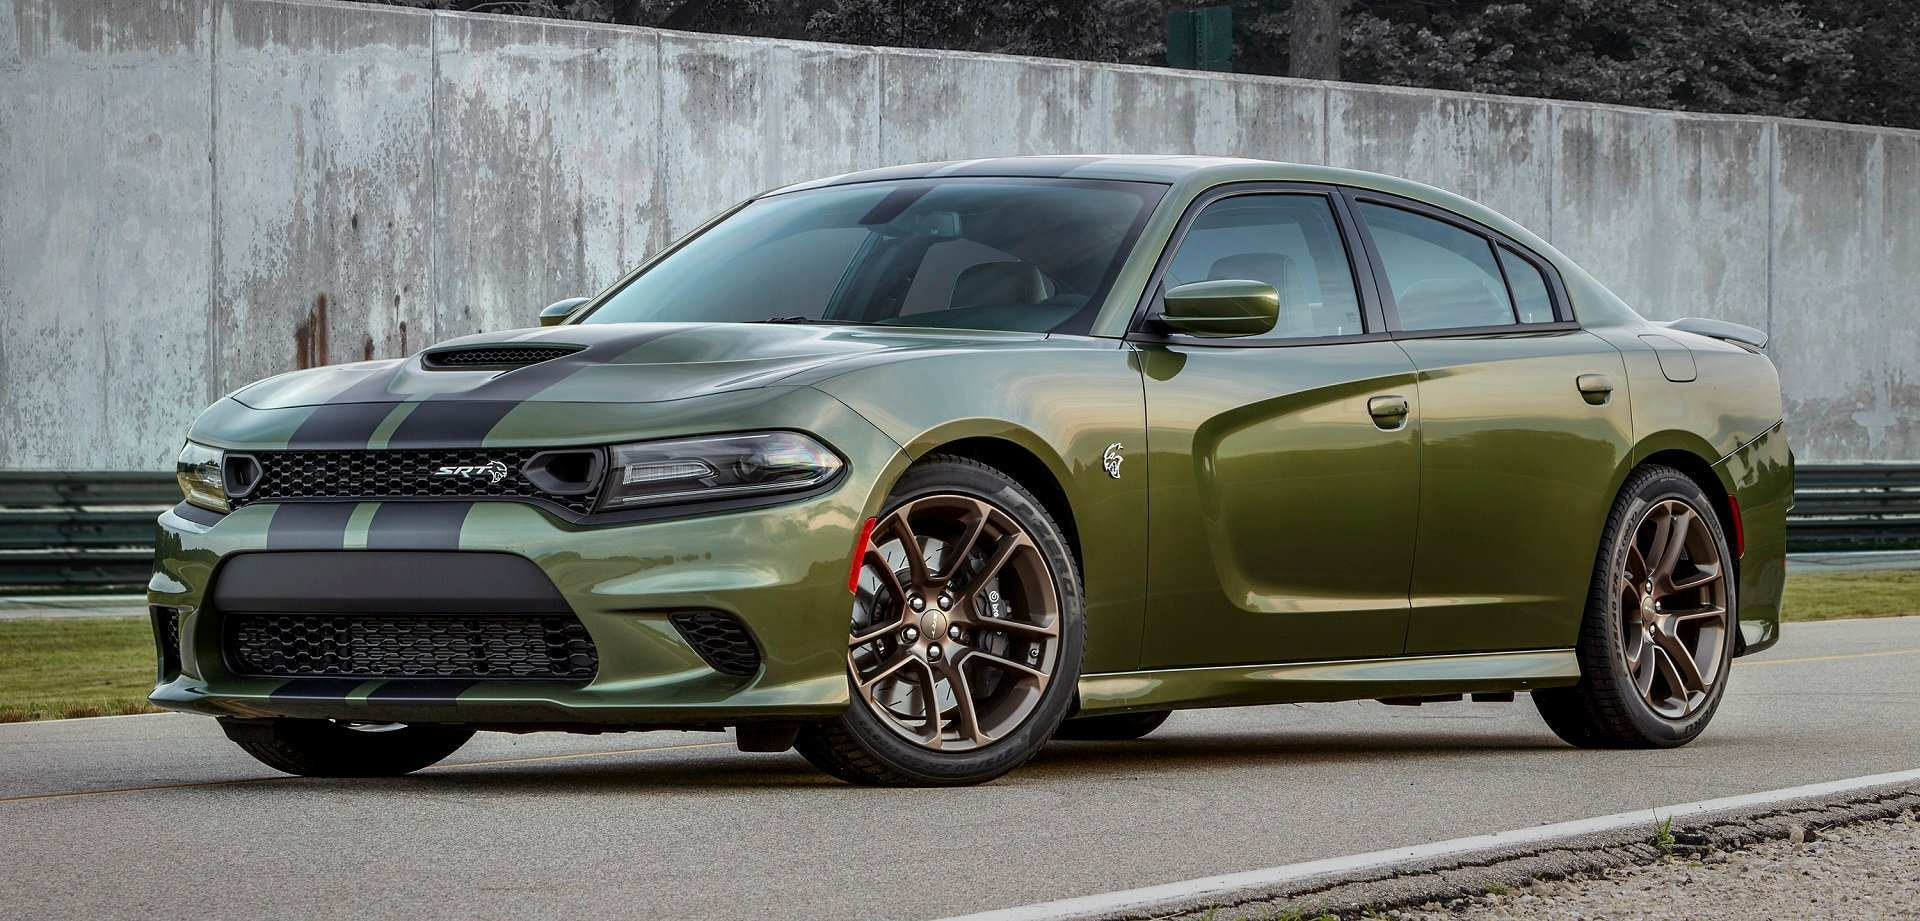 49 Best Review 2020 Dodge Angel Pictures with 2020 Dodge Angel